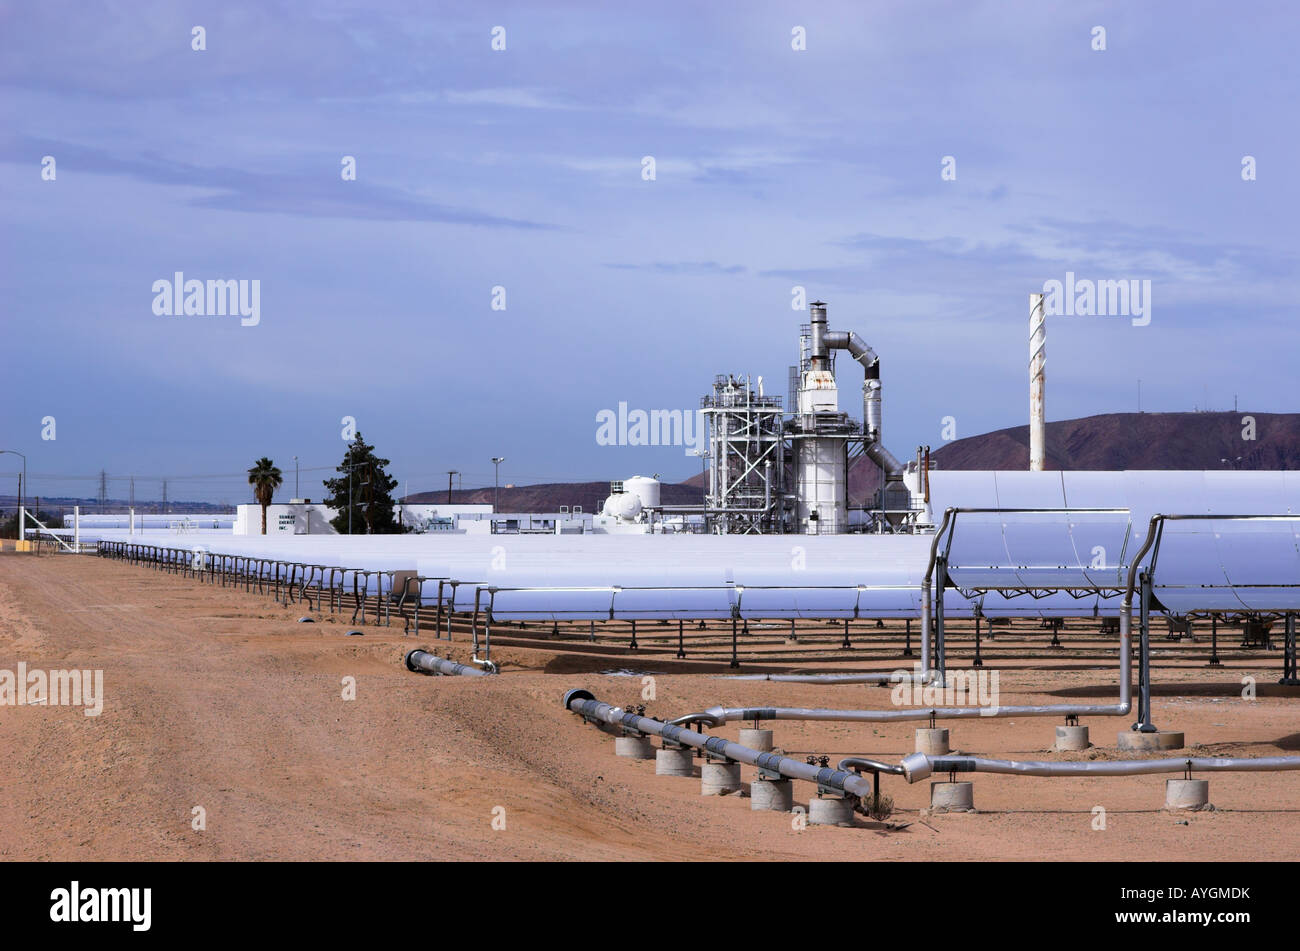 Solar Electric Generating Systems power plant in Daggett, Mojave desert, California, USA. - Stock Image